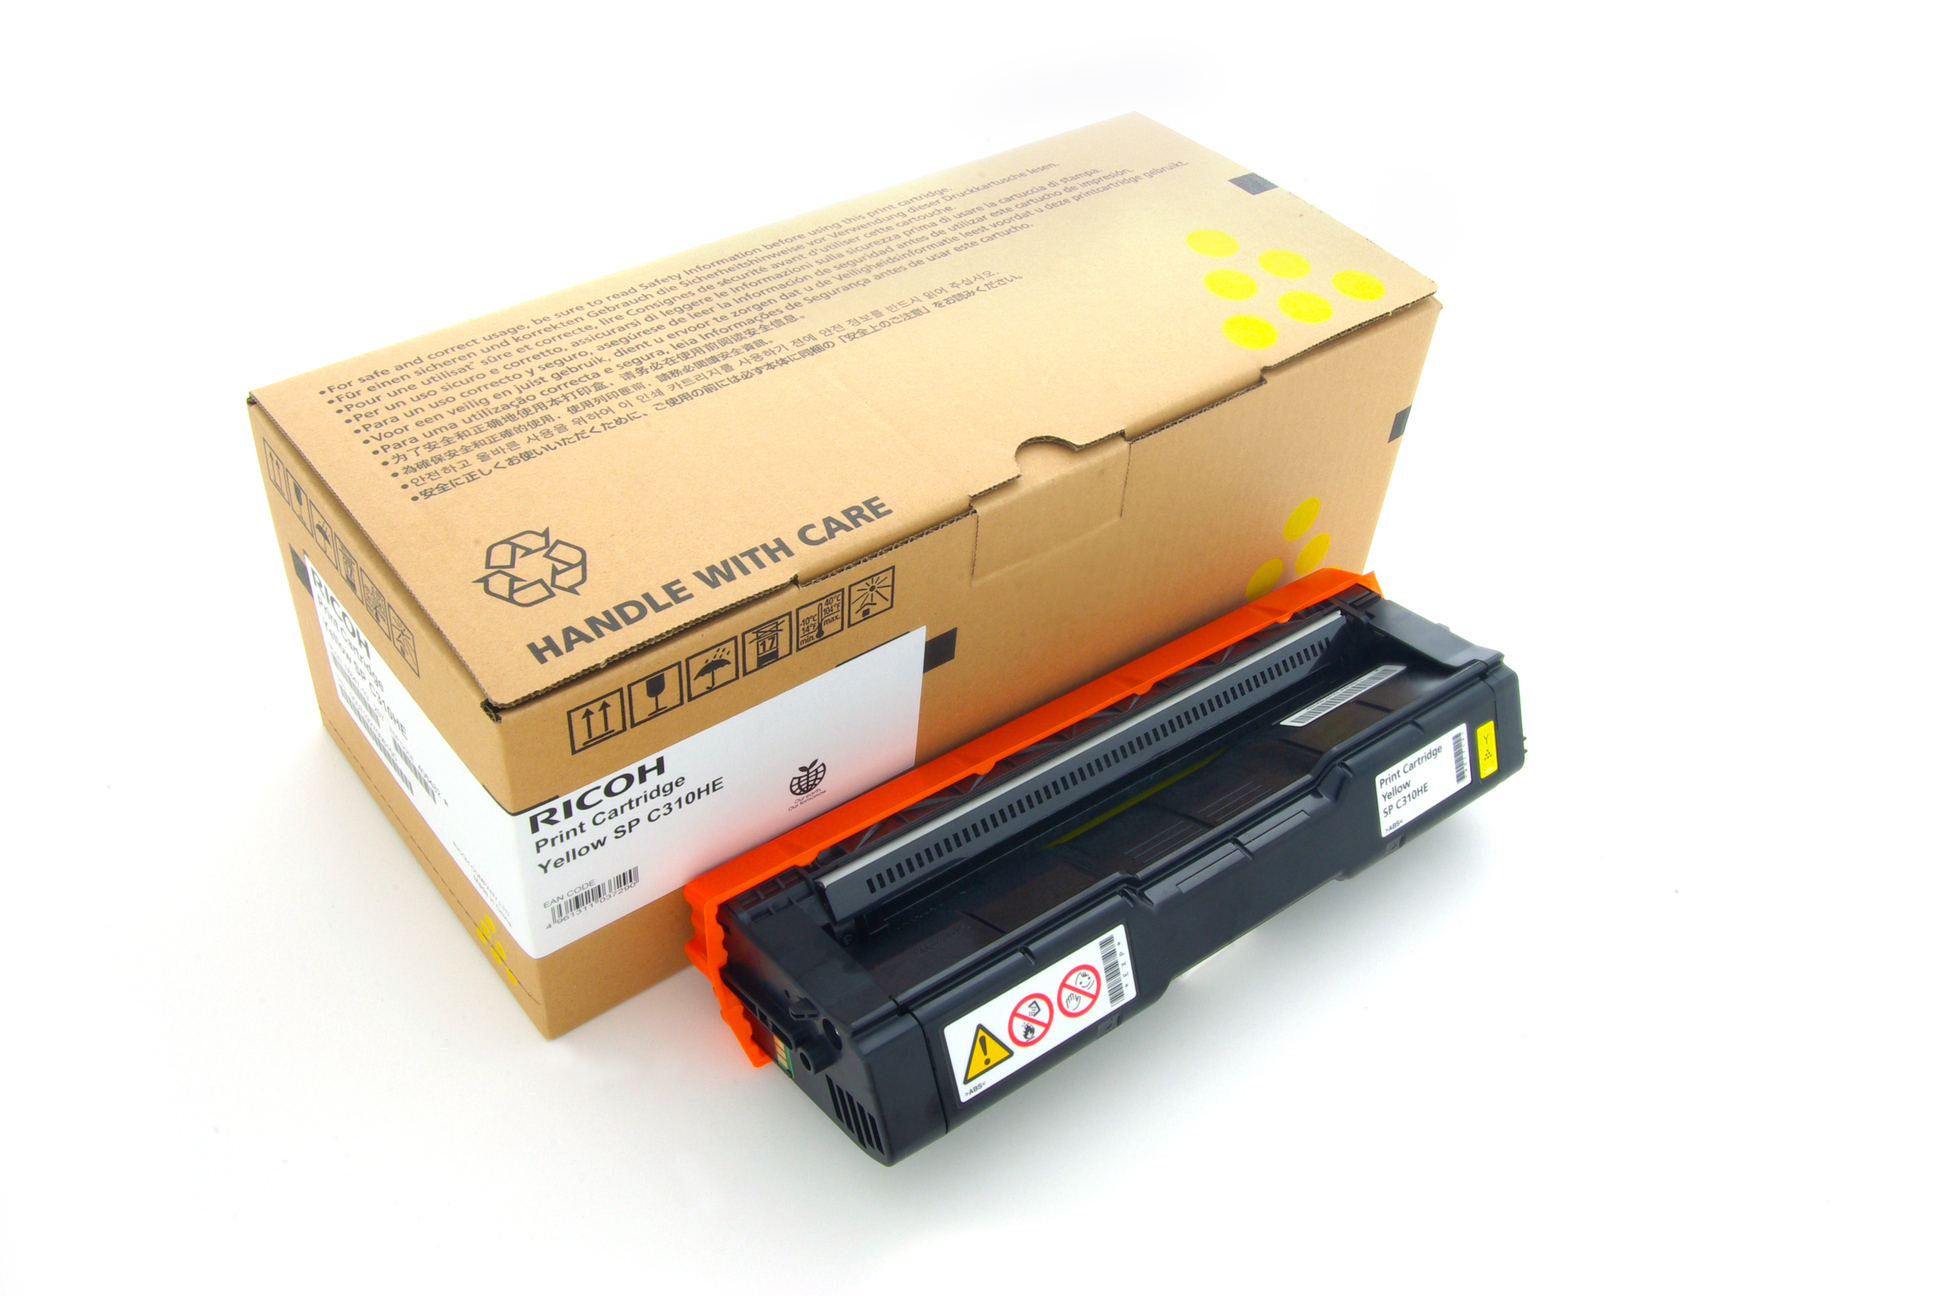 Reman Ricoh 406482 Toner Cart Yellow Aficio SP231N 406482 - rem01